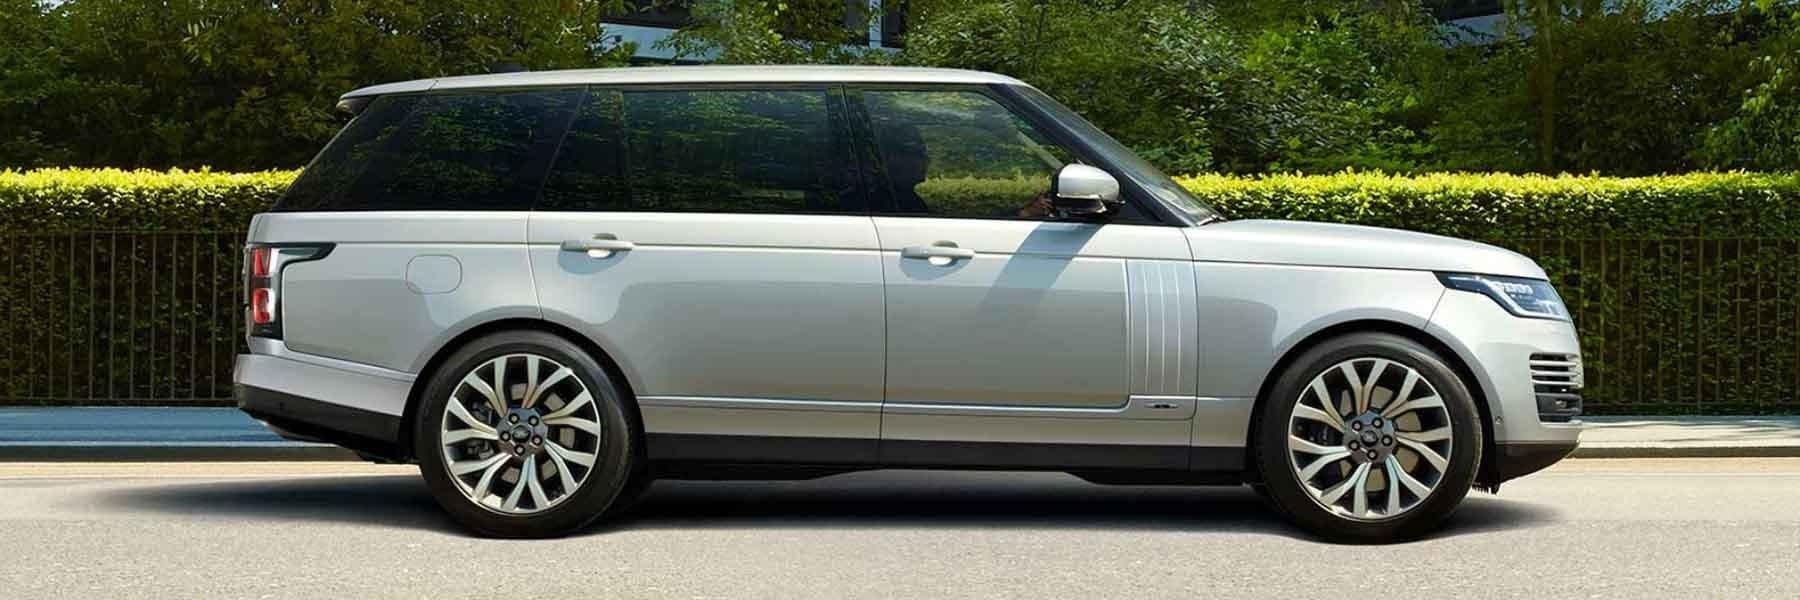 Does The Range Rover Have 7 Seats Land Rover Freeport